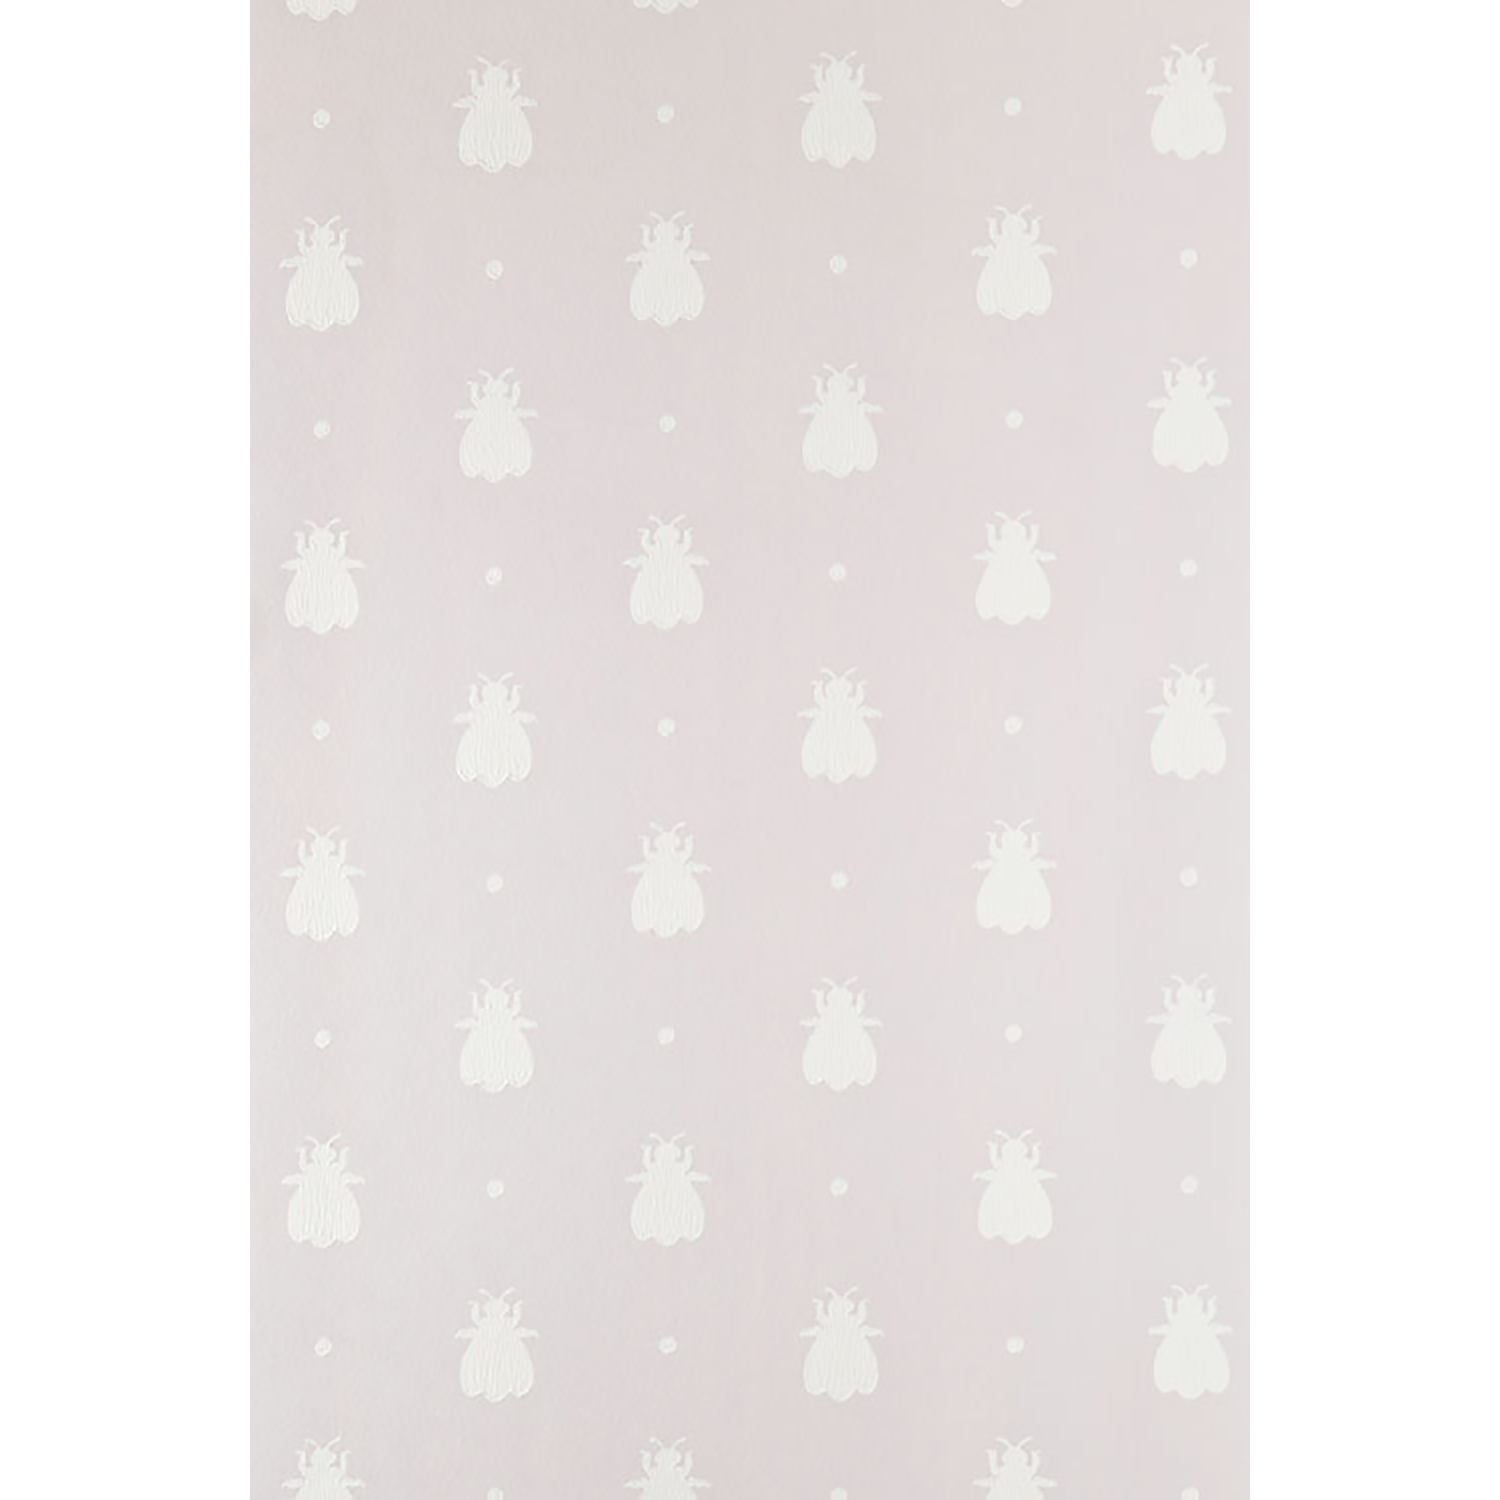 Image of Farrow And Ball Bumble Bee Wallpaper 5-16, Cream/ Gold